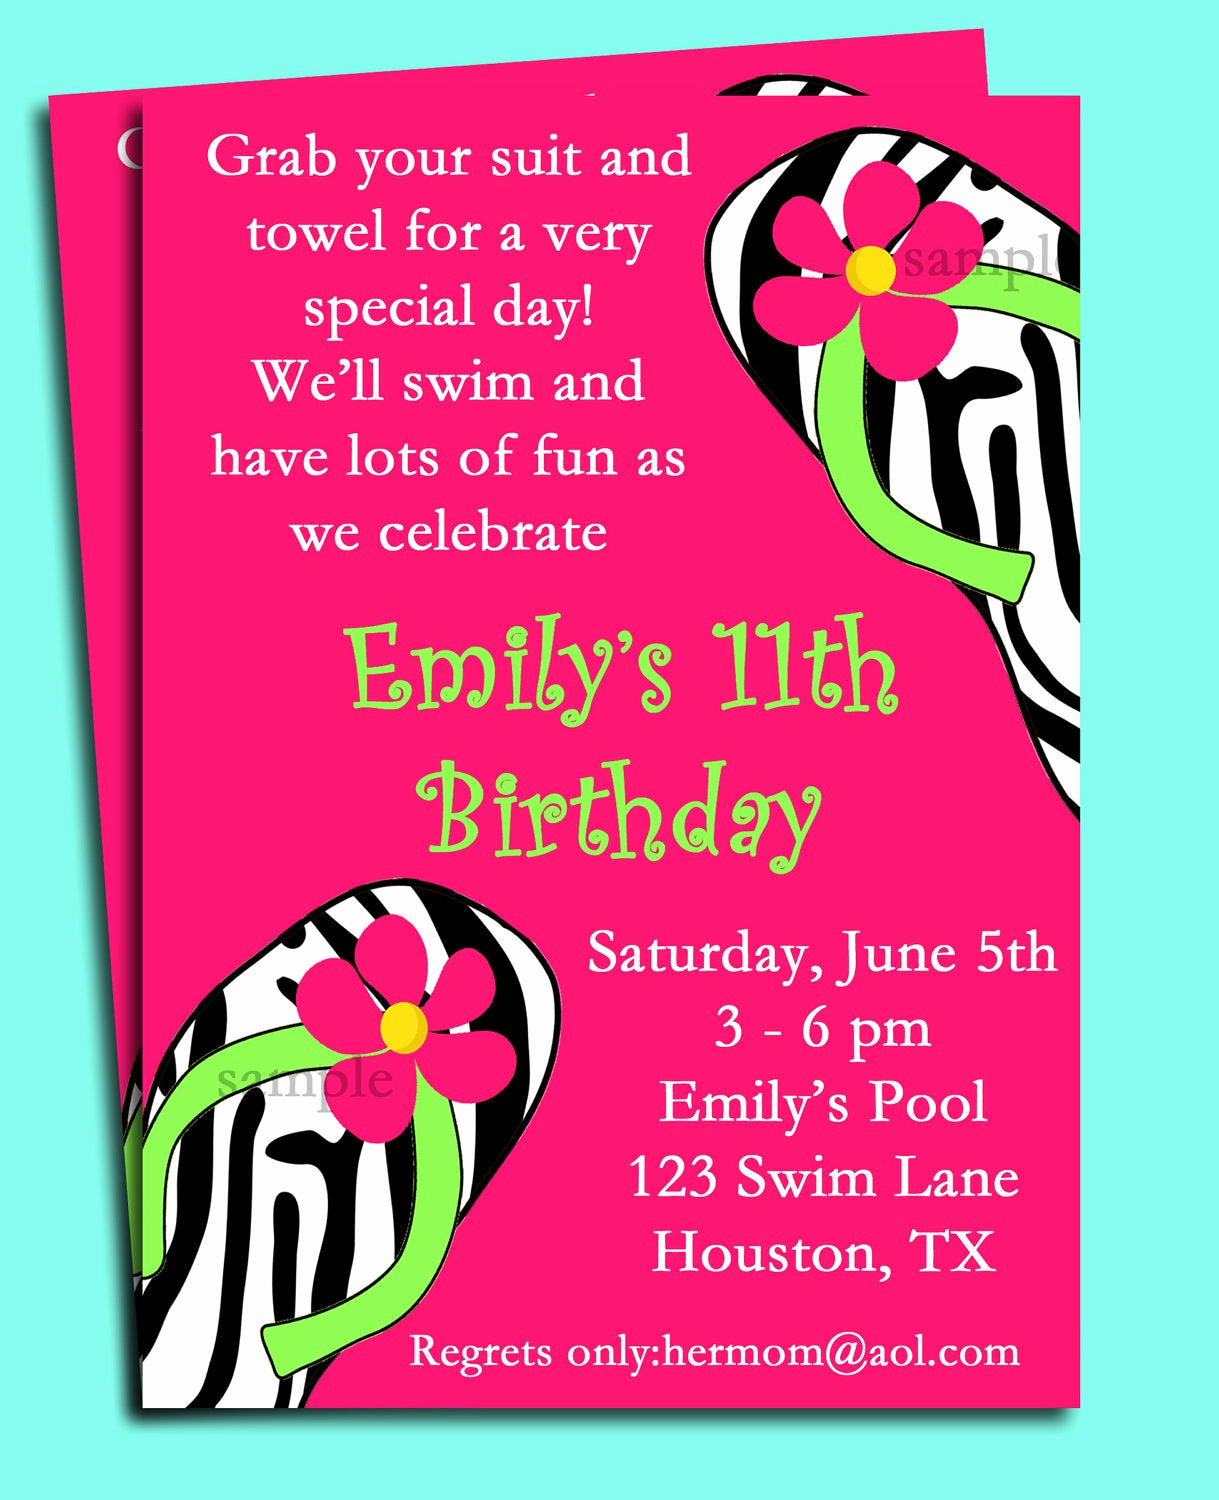 Pool Party Invitation Wording Beautiful Pool Party Invitation Spa Party Invitation Swim Party